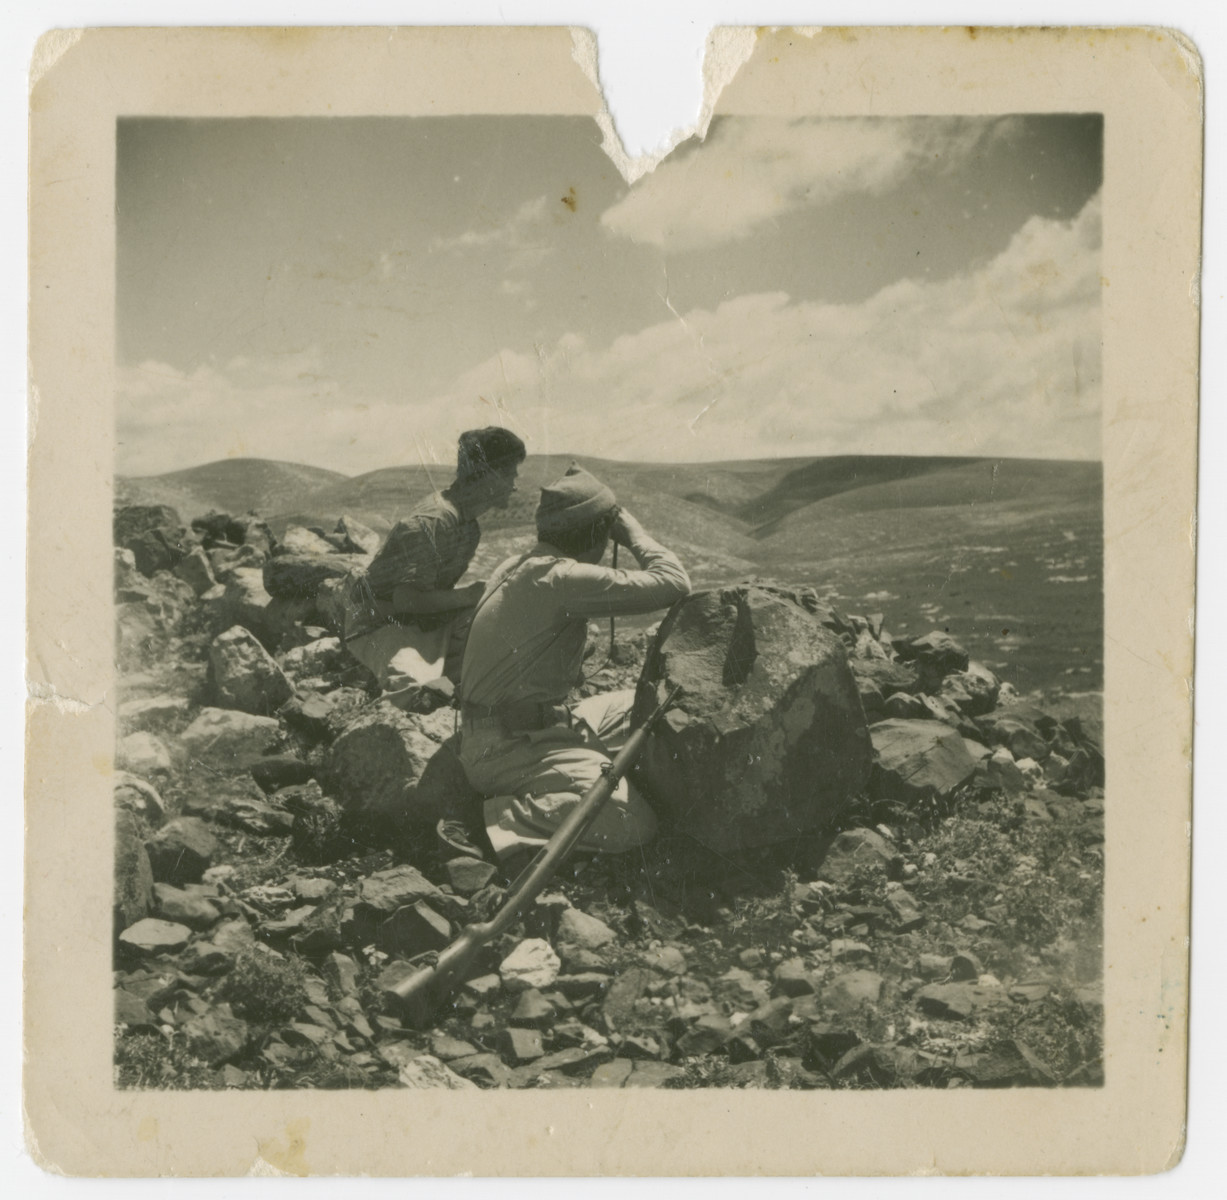 Lt. Yehuda Bielski (left) sits on a rocky hillside and scouts out the situation during the Israeli War of Independence.